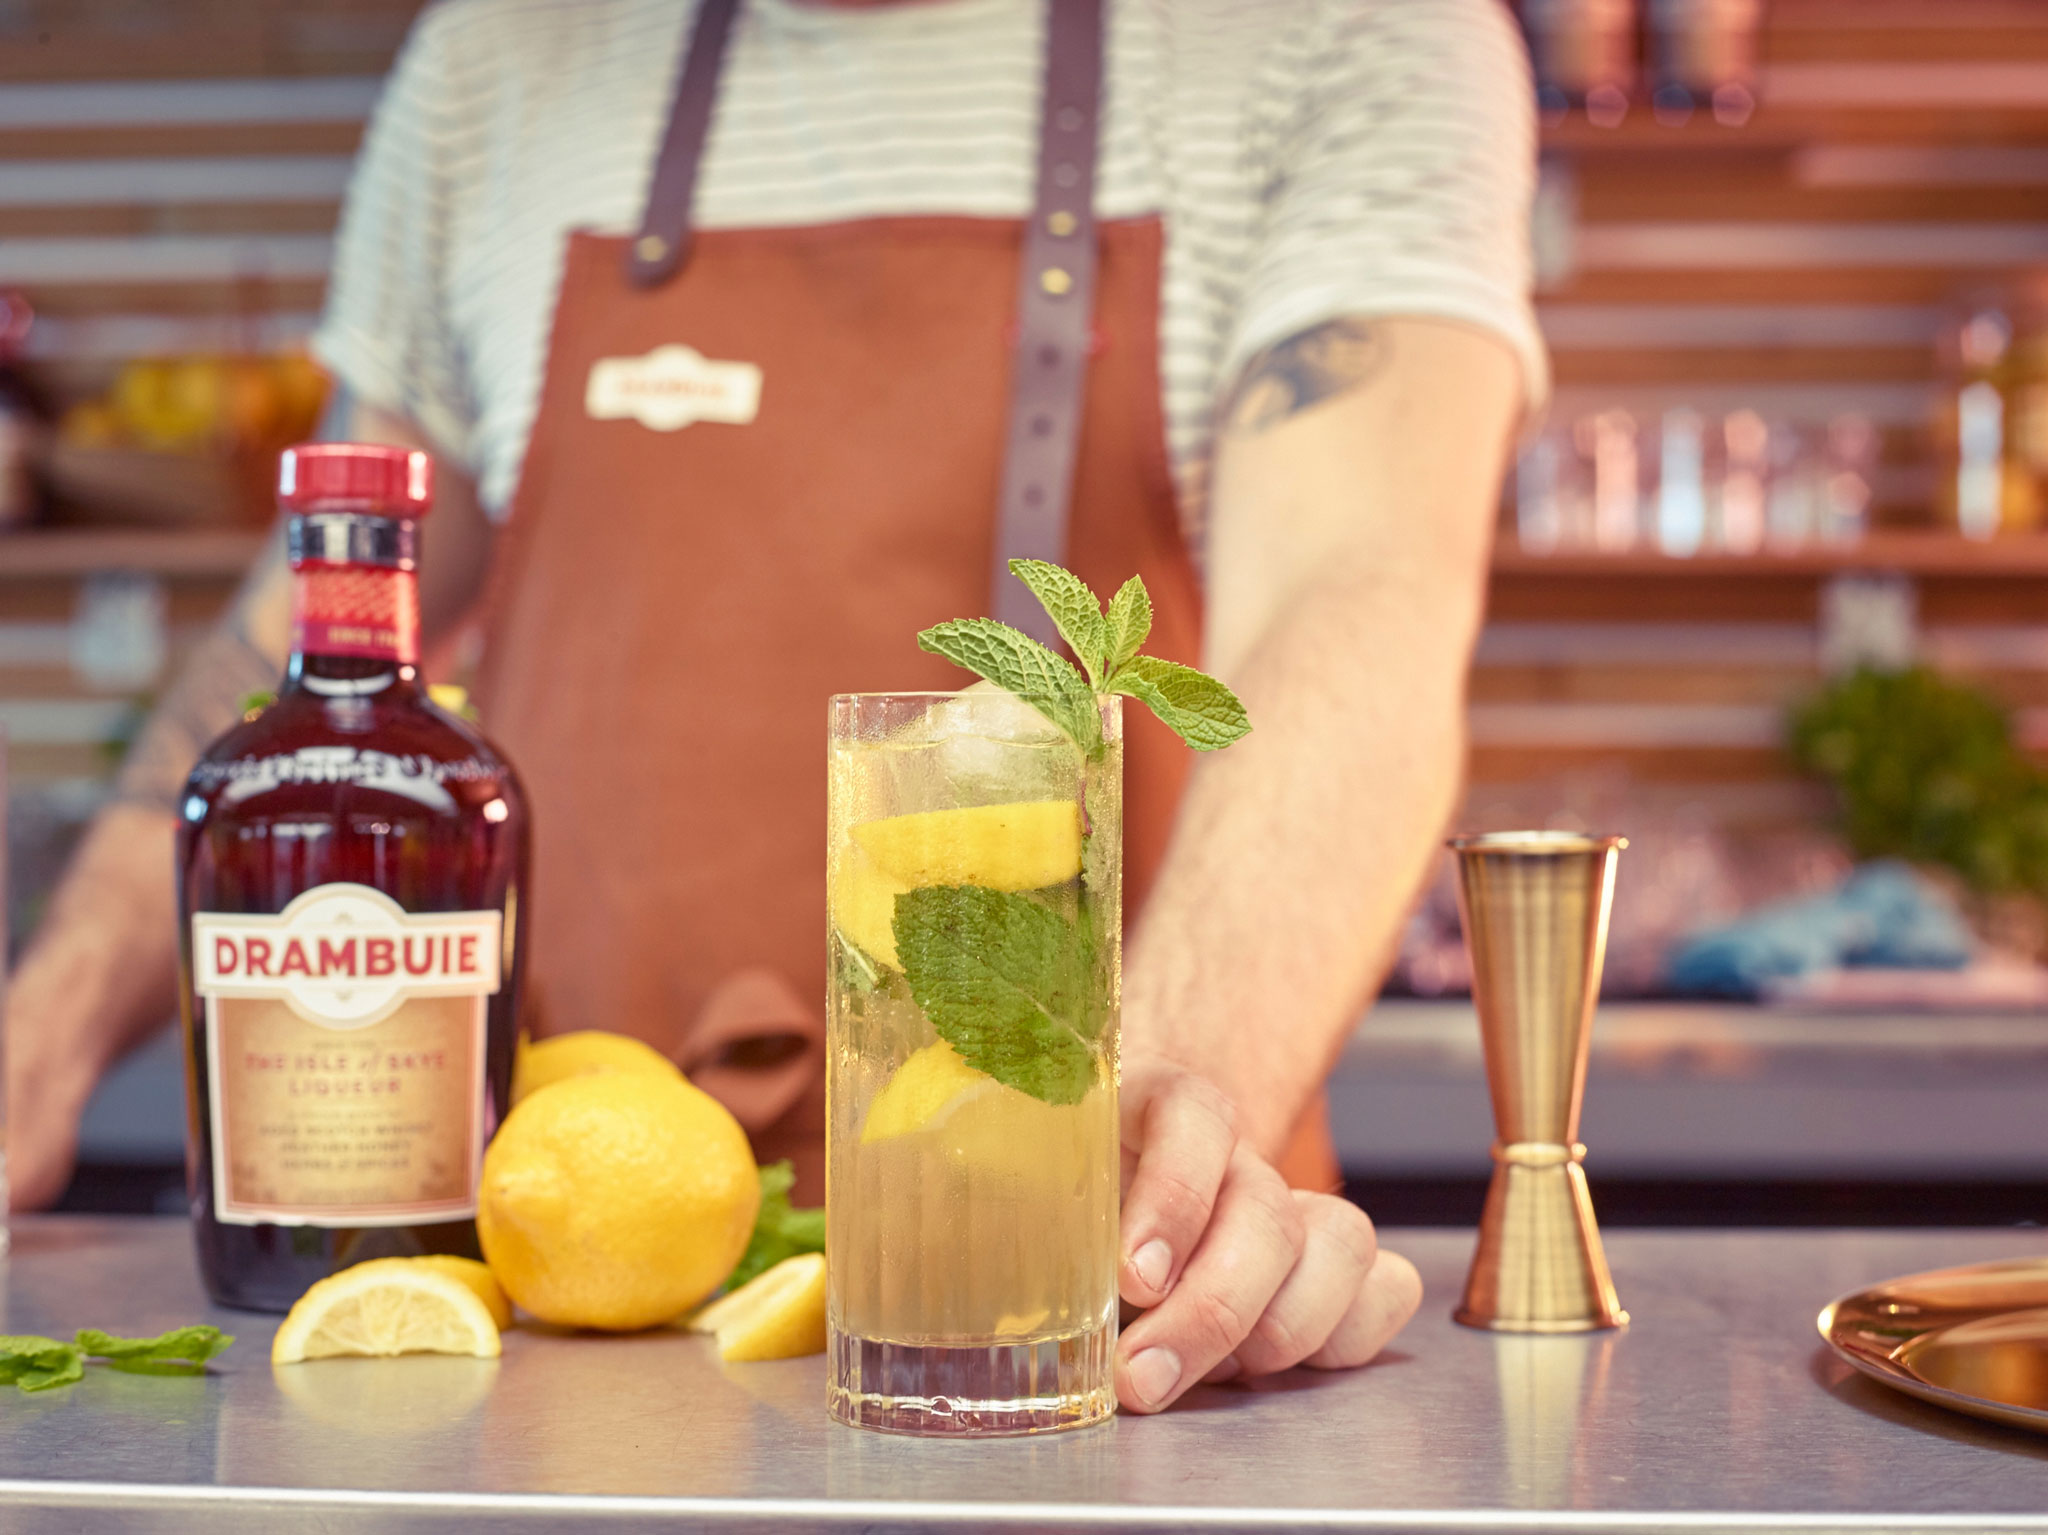 Drambuie   Iconic Scotch Whisky Liqueur Infused with Heather